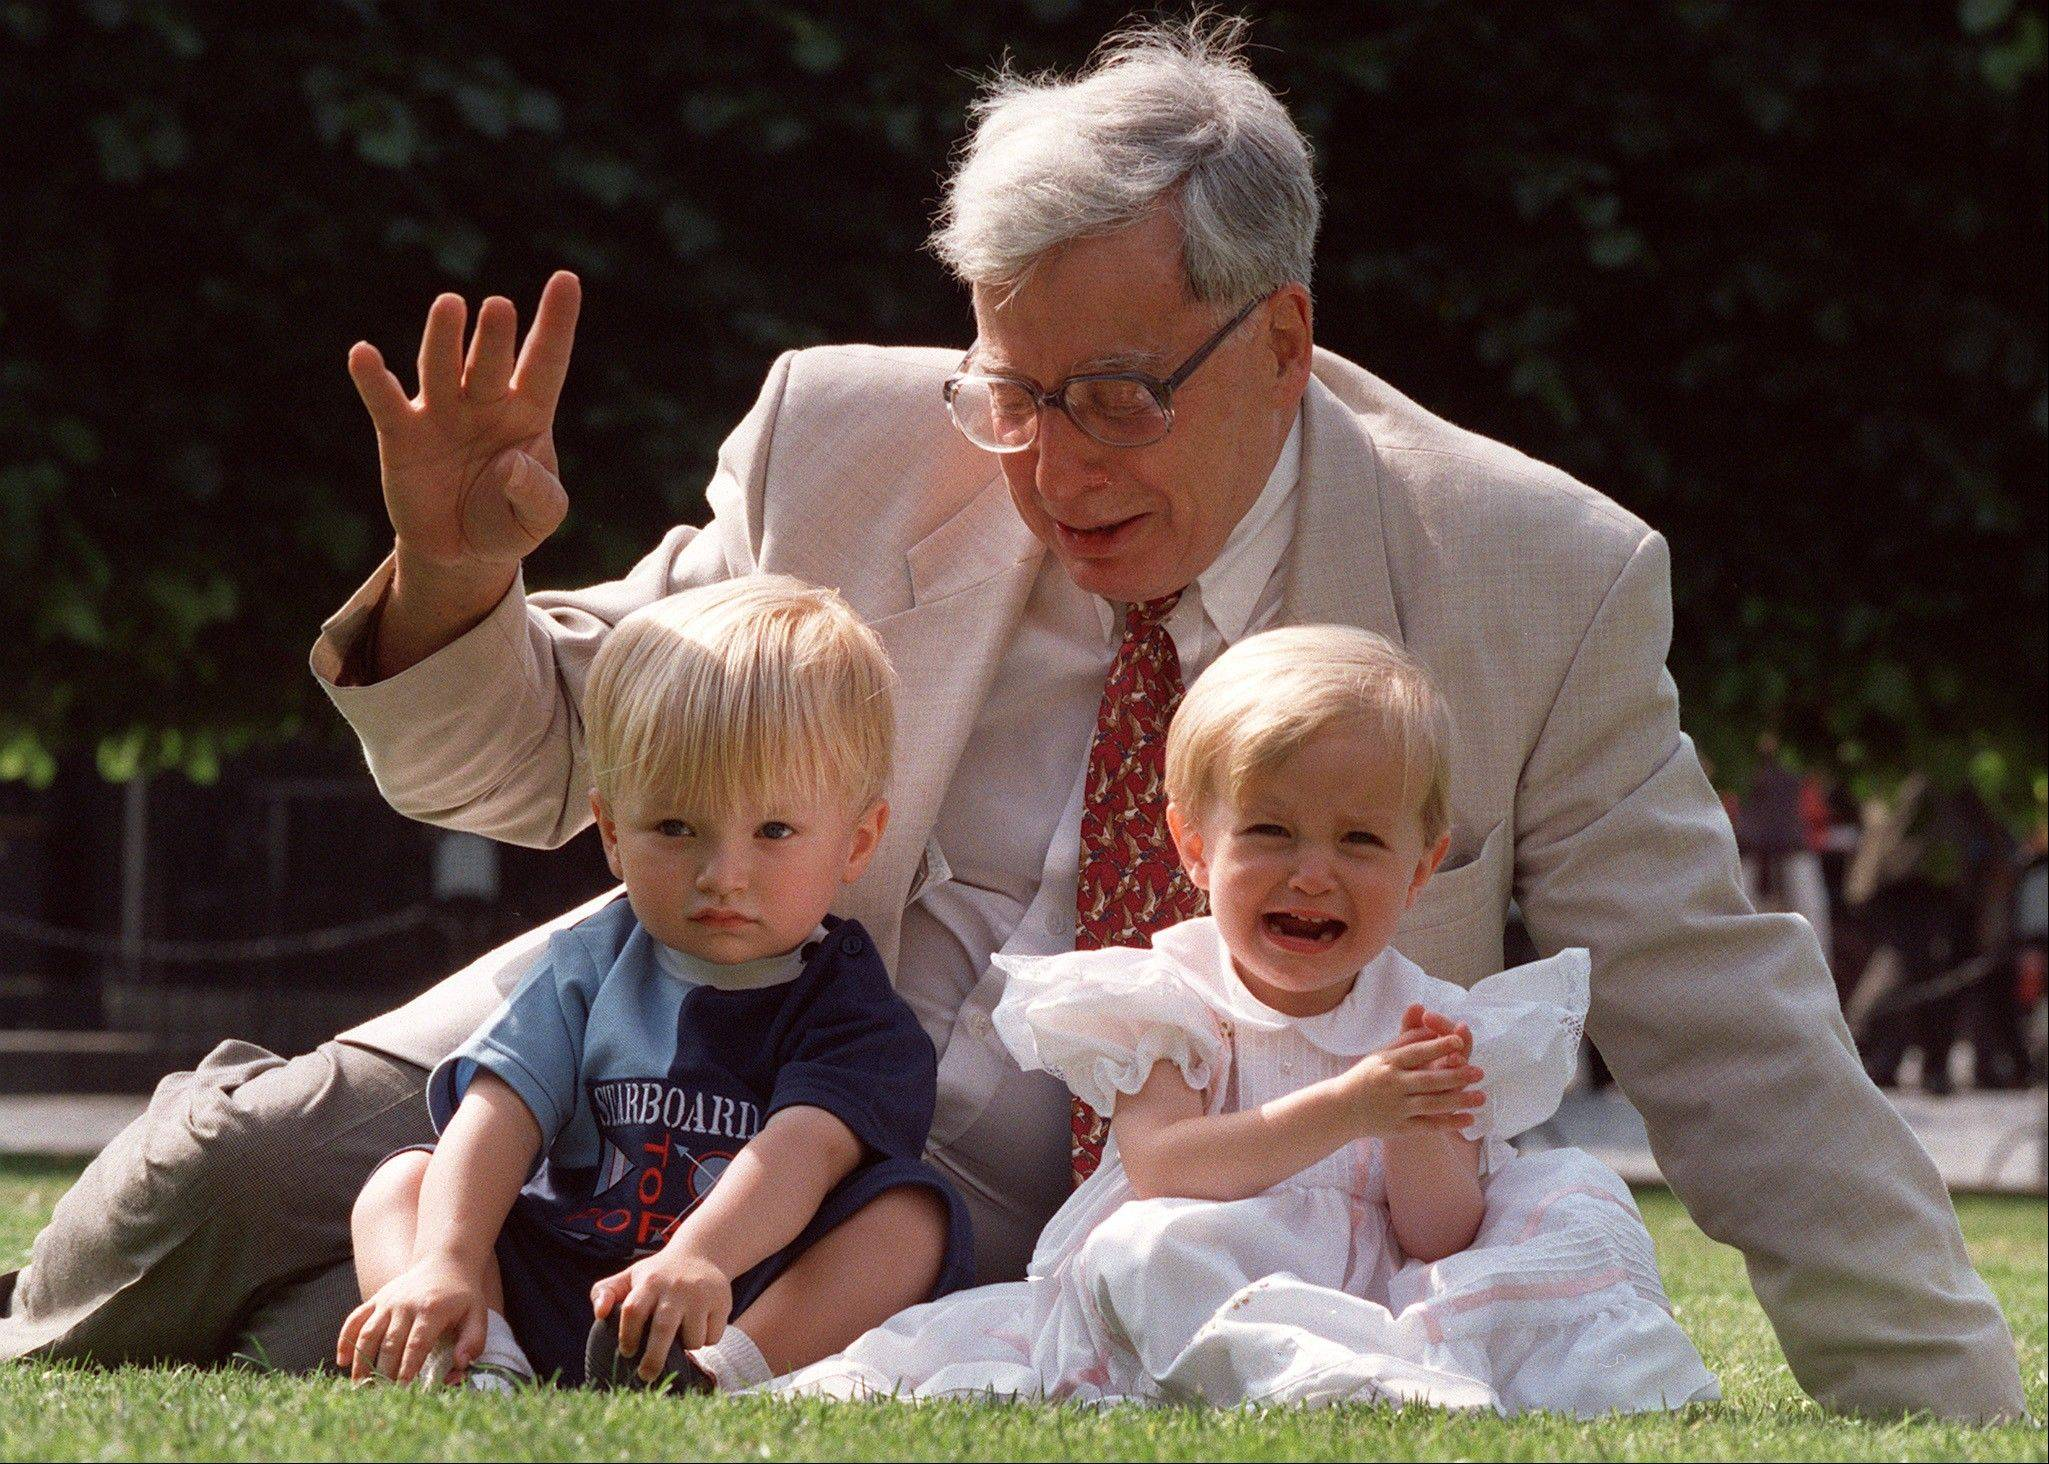 The British pioneer of IVF treatment, Professor Robert Edwards, sits with two of his 'test-tube-babies' in 1998. The Nobel Prize winner for medicine, Edwards has died at age 87.